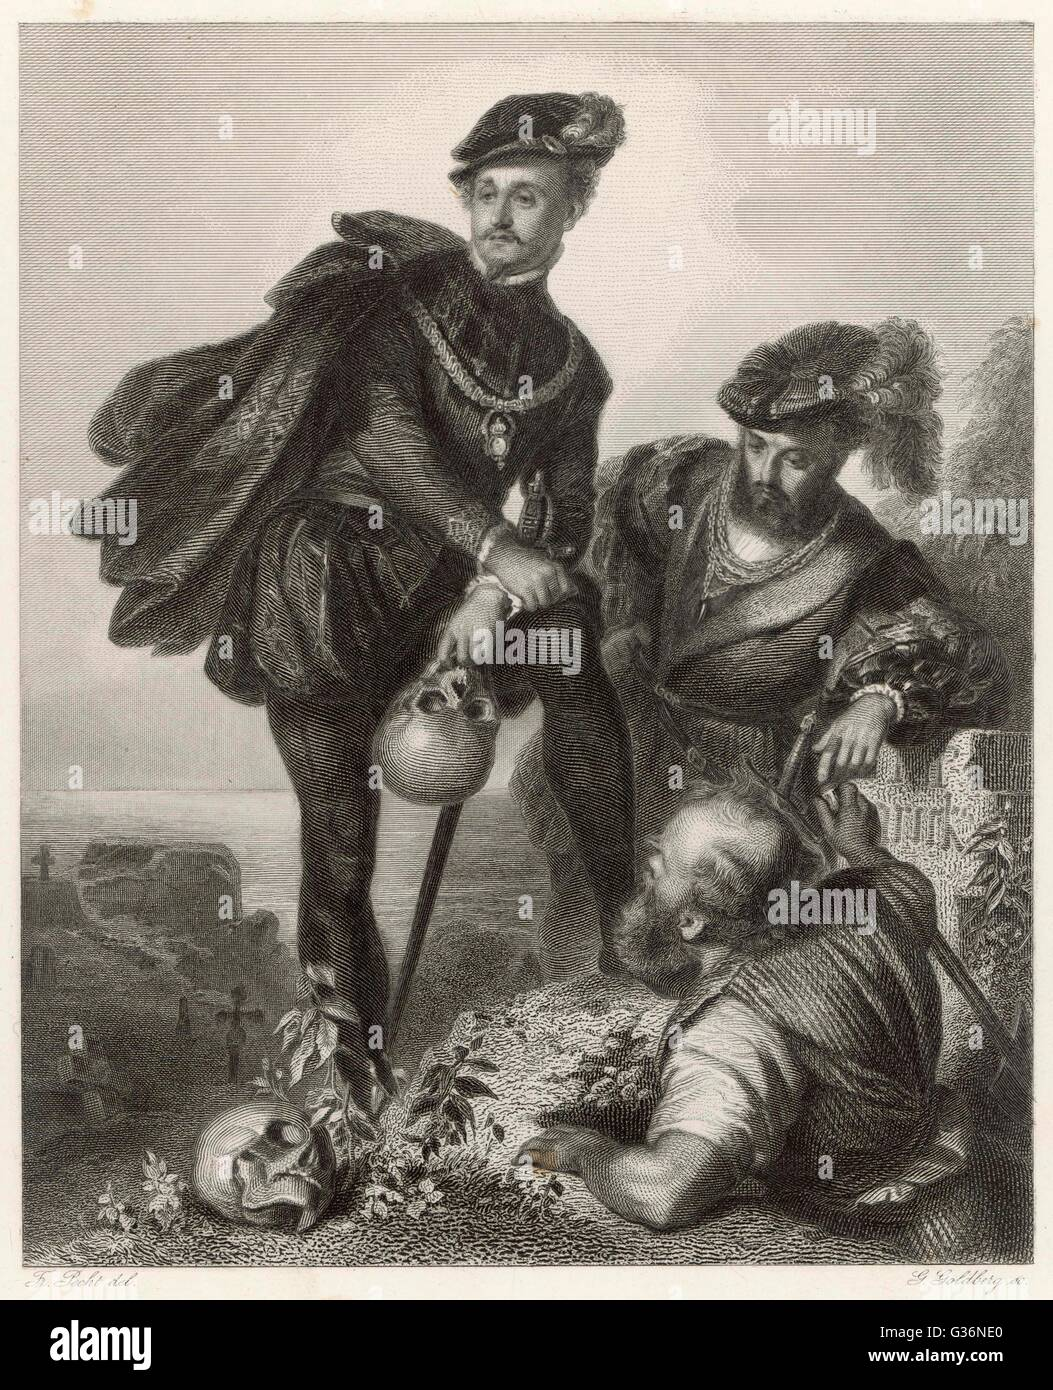 A scene from Shakespeare's tragedy, Hamlet, Prince of Denmark, depicting Hamlet and his friend Horatio with - Stock Image